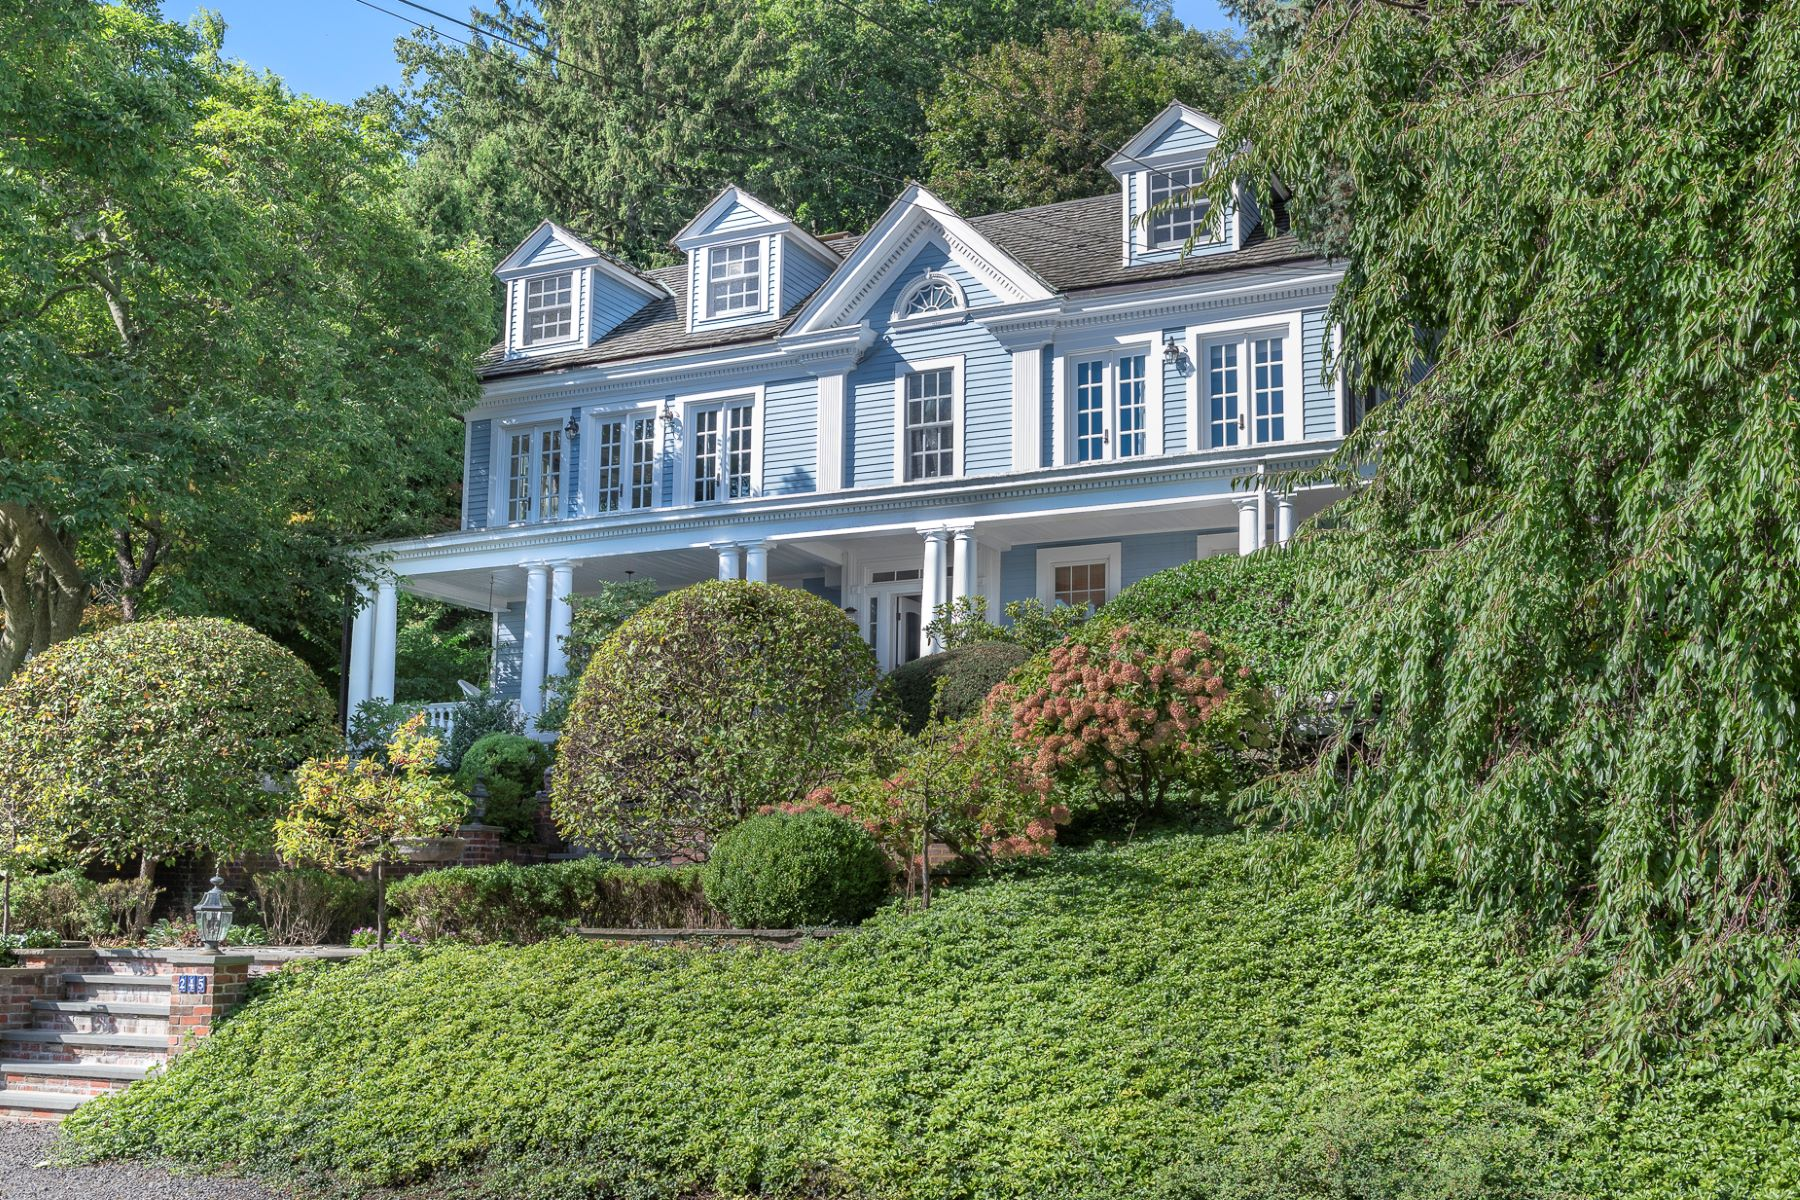 Single Family Homes for Active at Hudson River Valley Greek Revival 245 River Road Grandview, New York 10960 United States